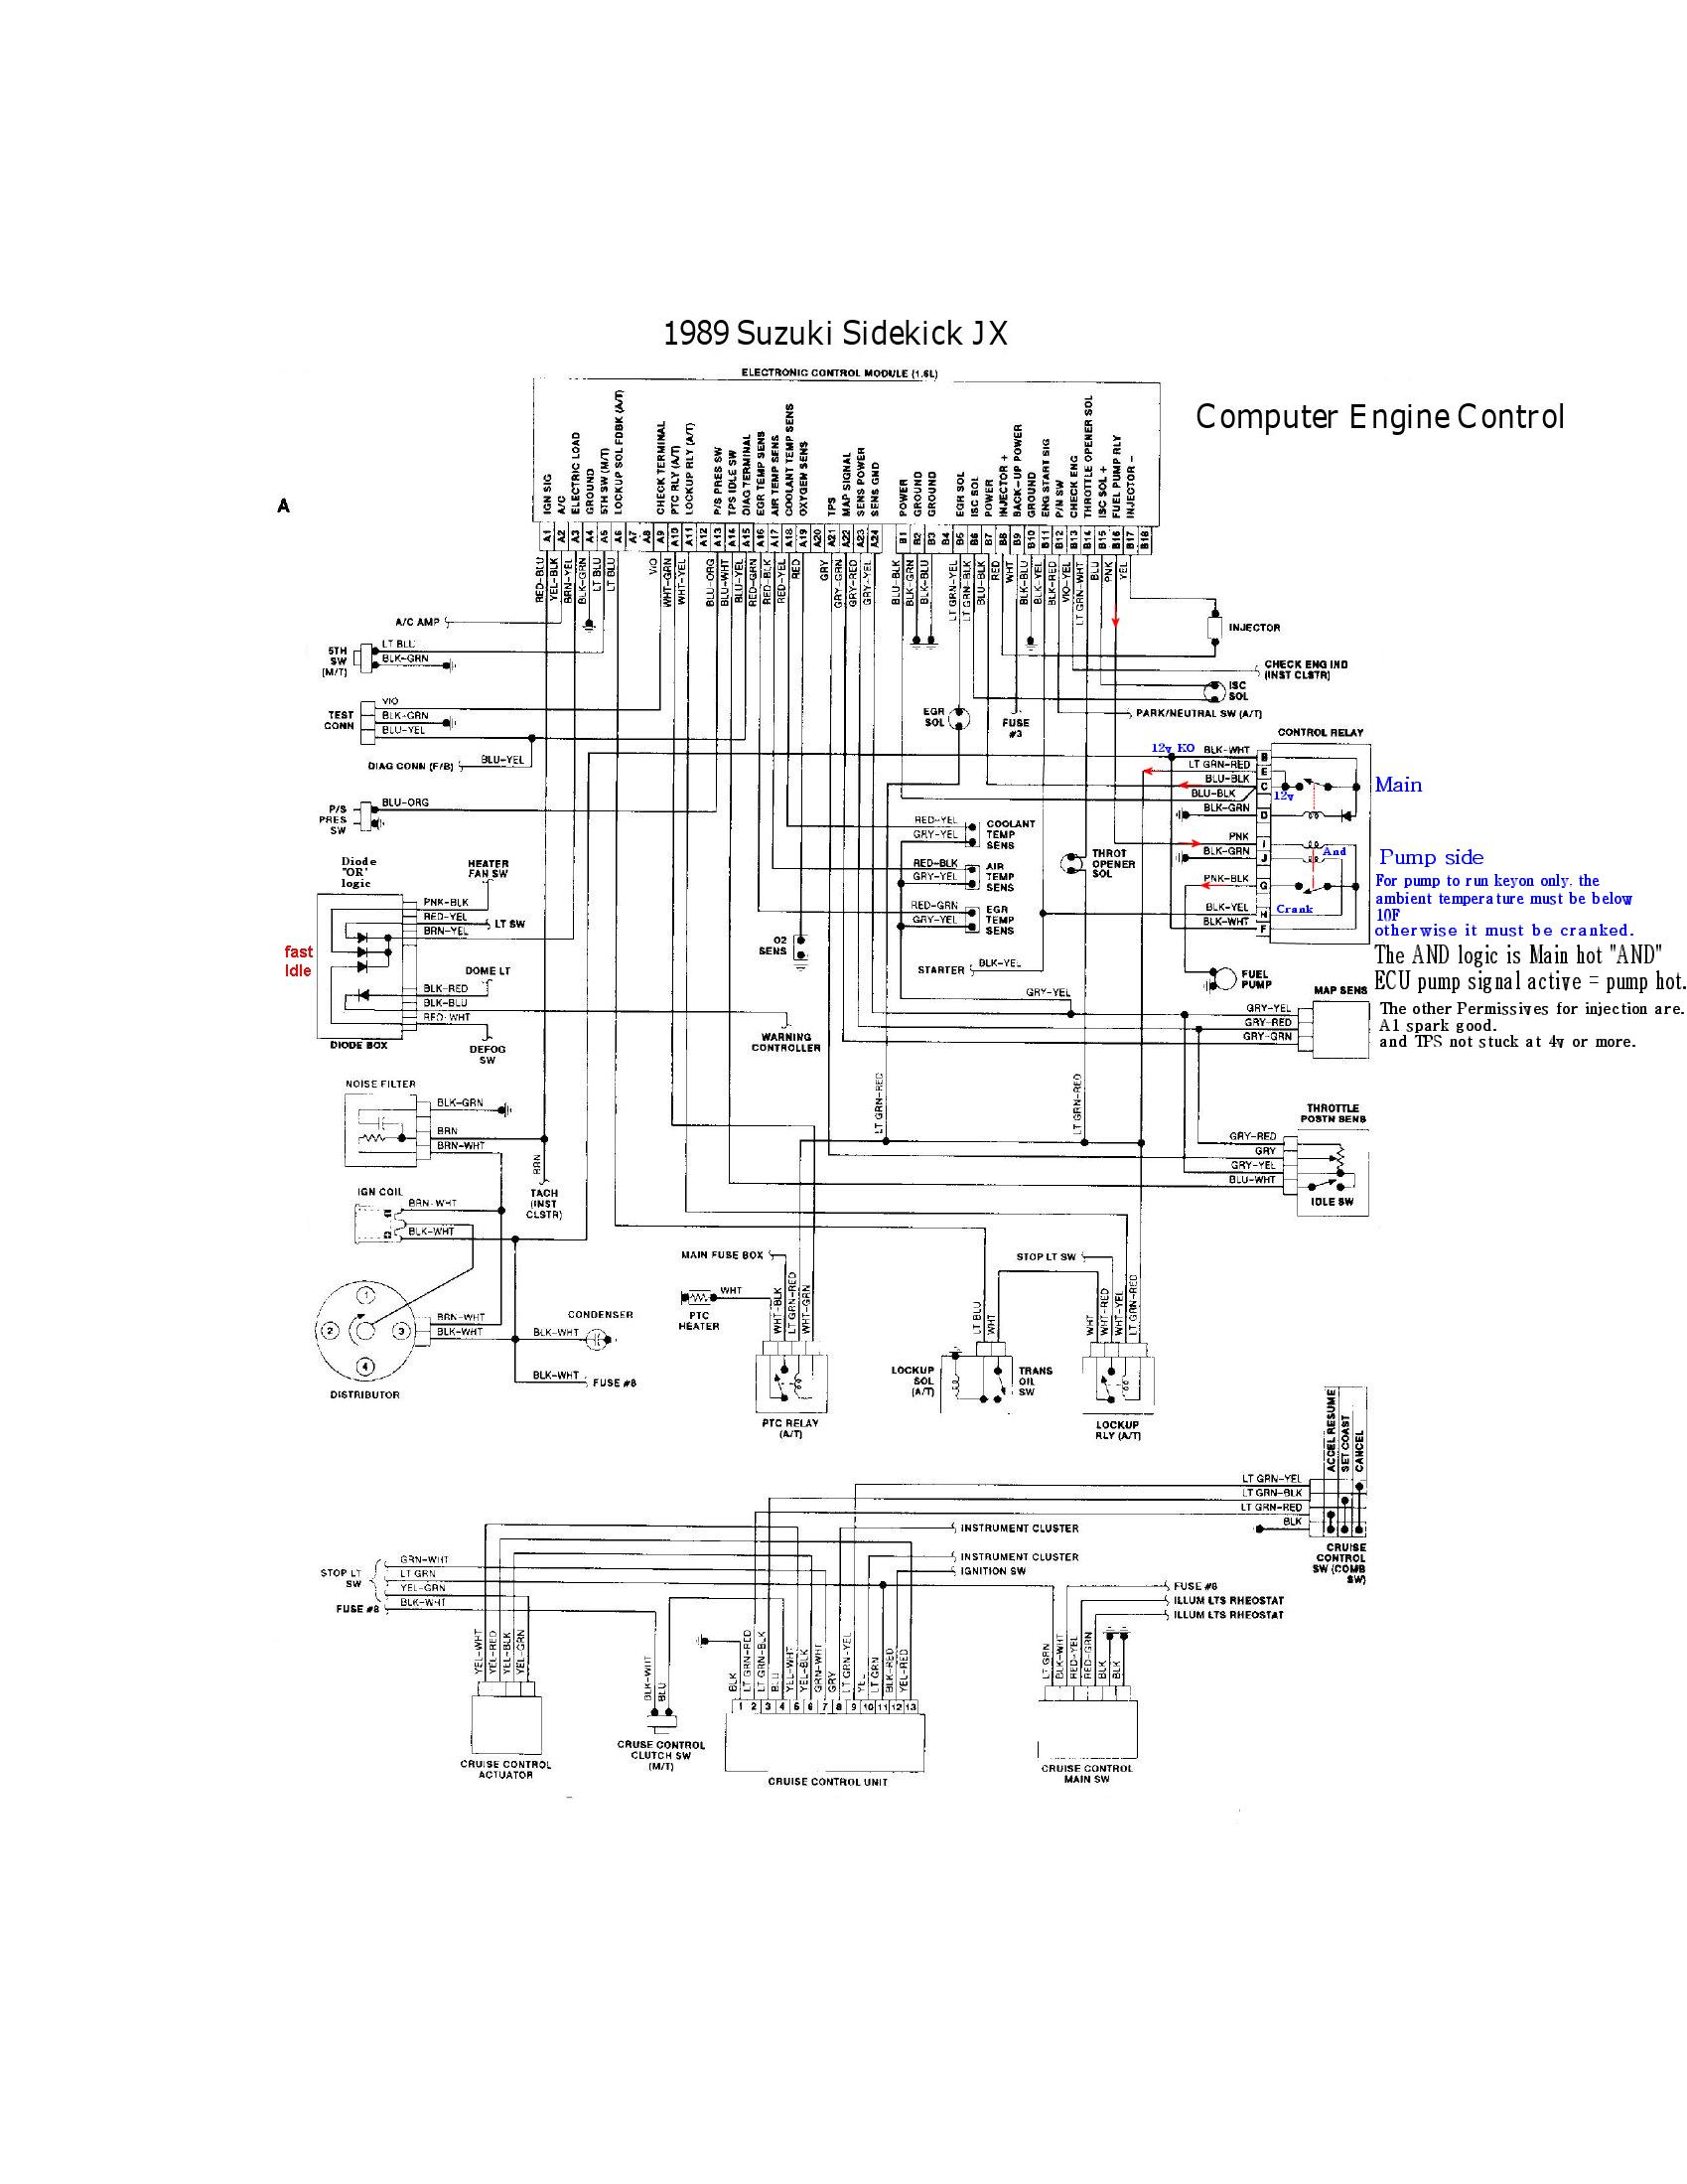 [DIAGRAM] 91 Geo Tracker Wiring Diagram FULL Version HD